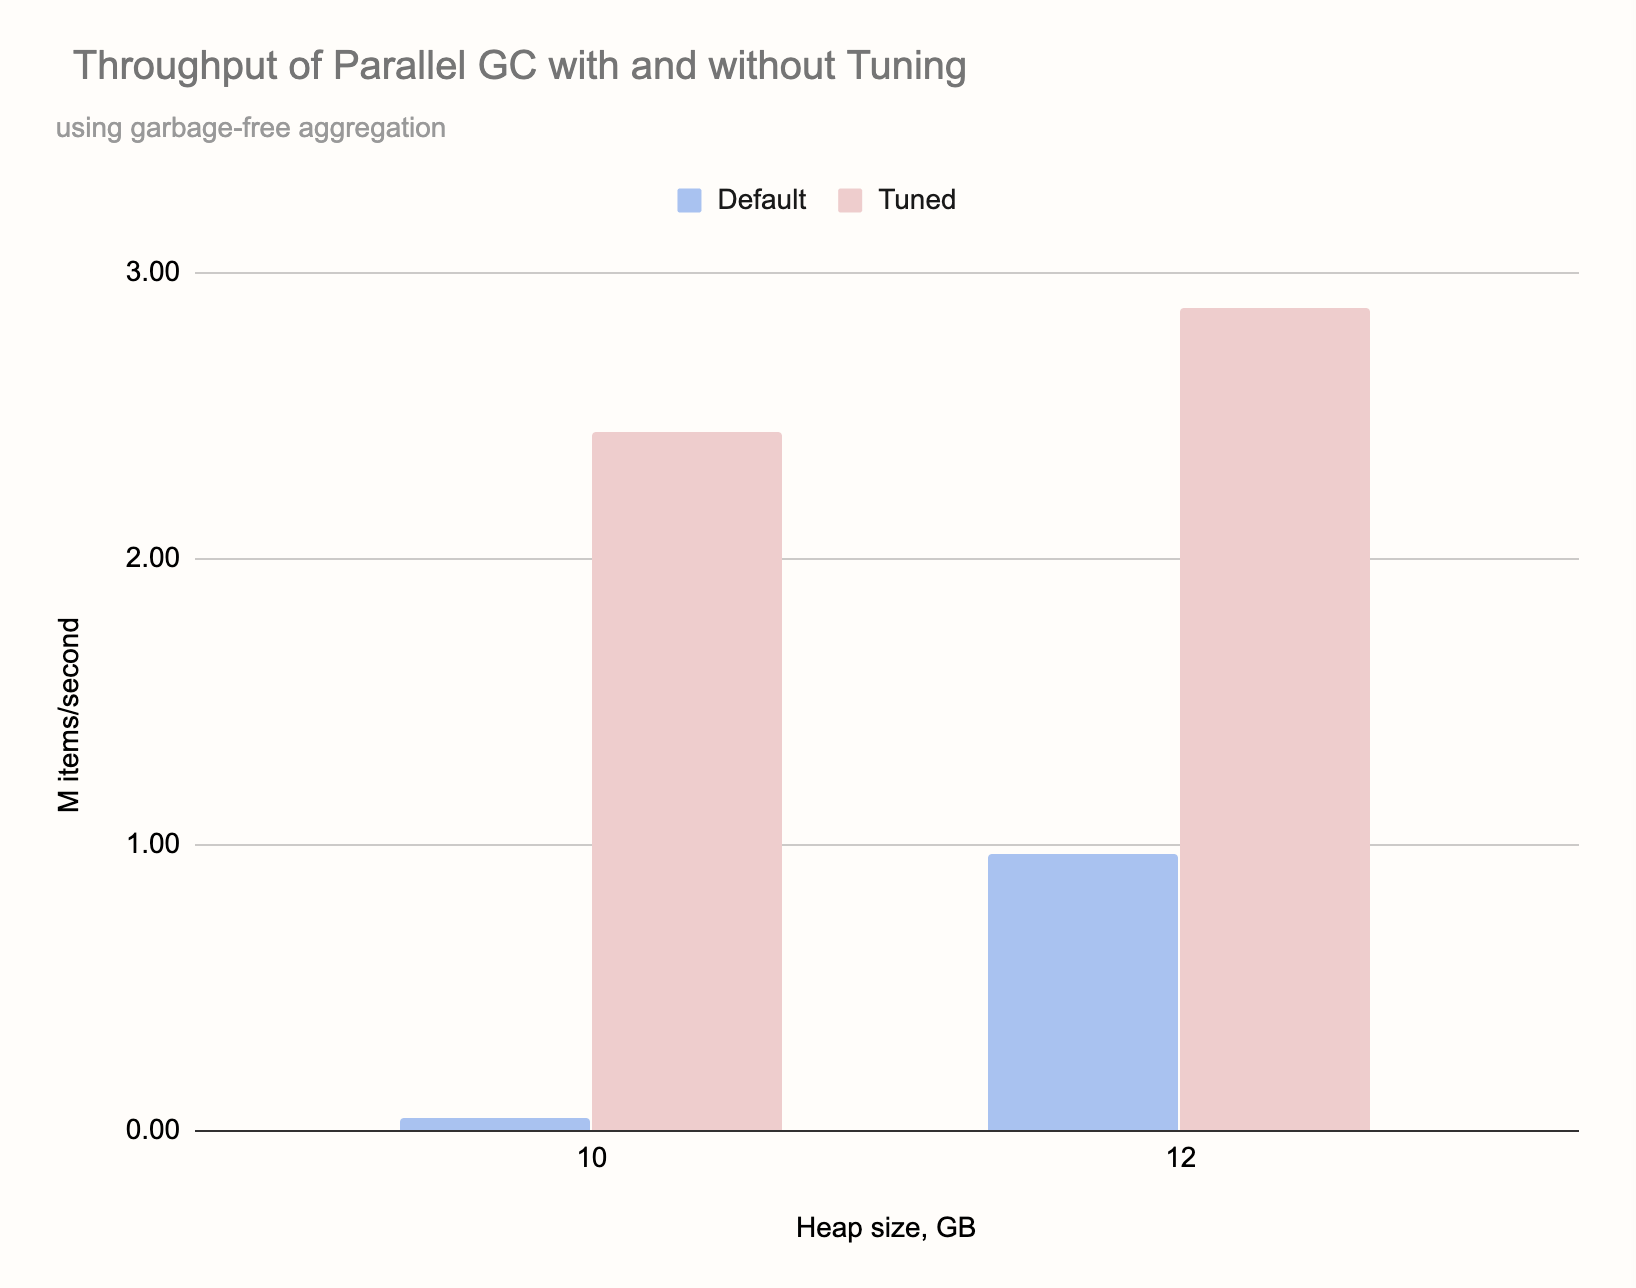 Throughput of the Parallel Collector with and without tuning